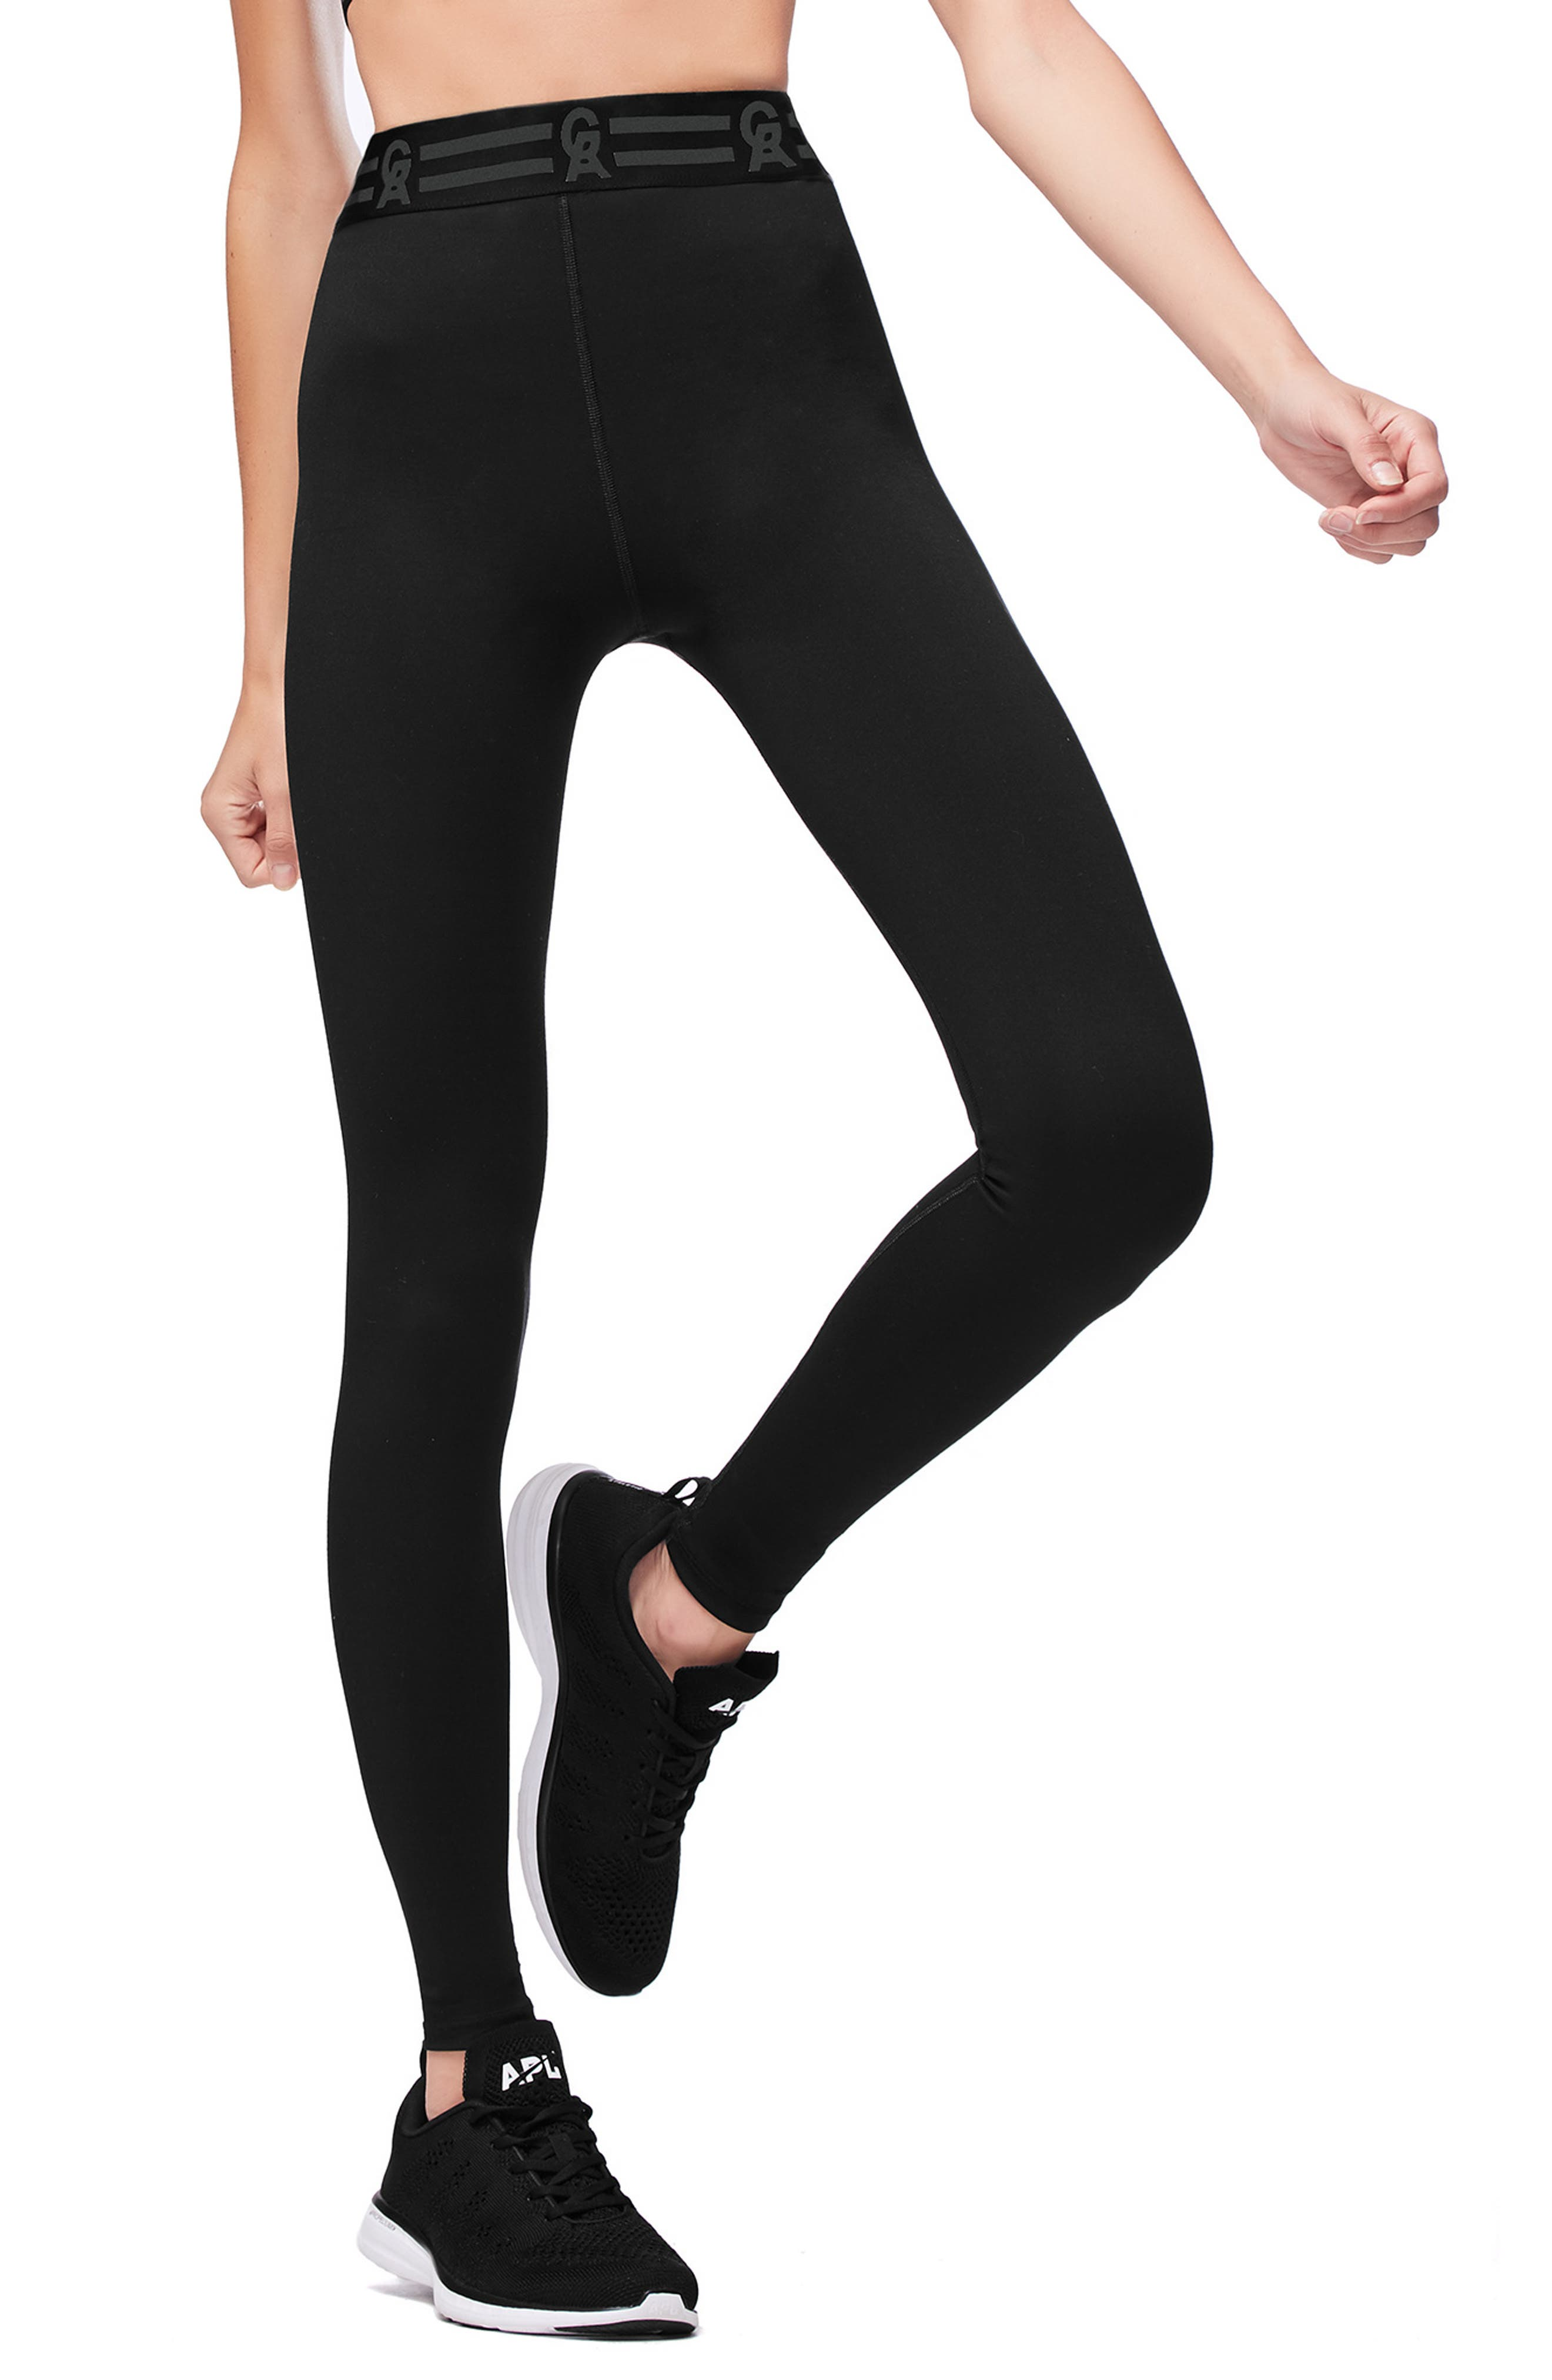 Women's Good American Icon High Waist Leggings